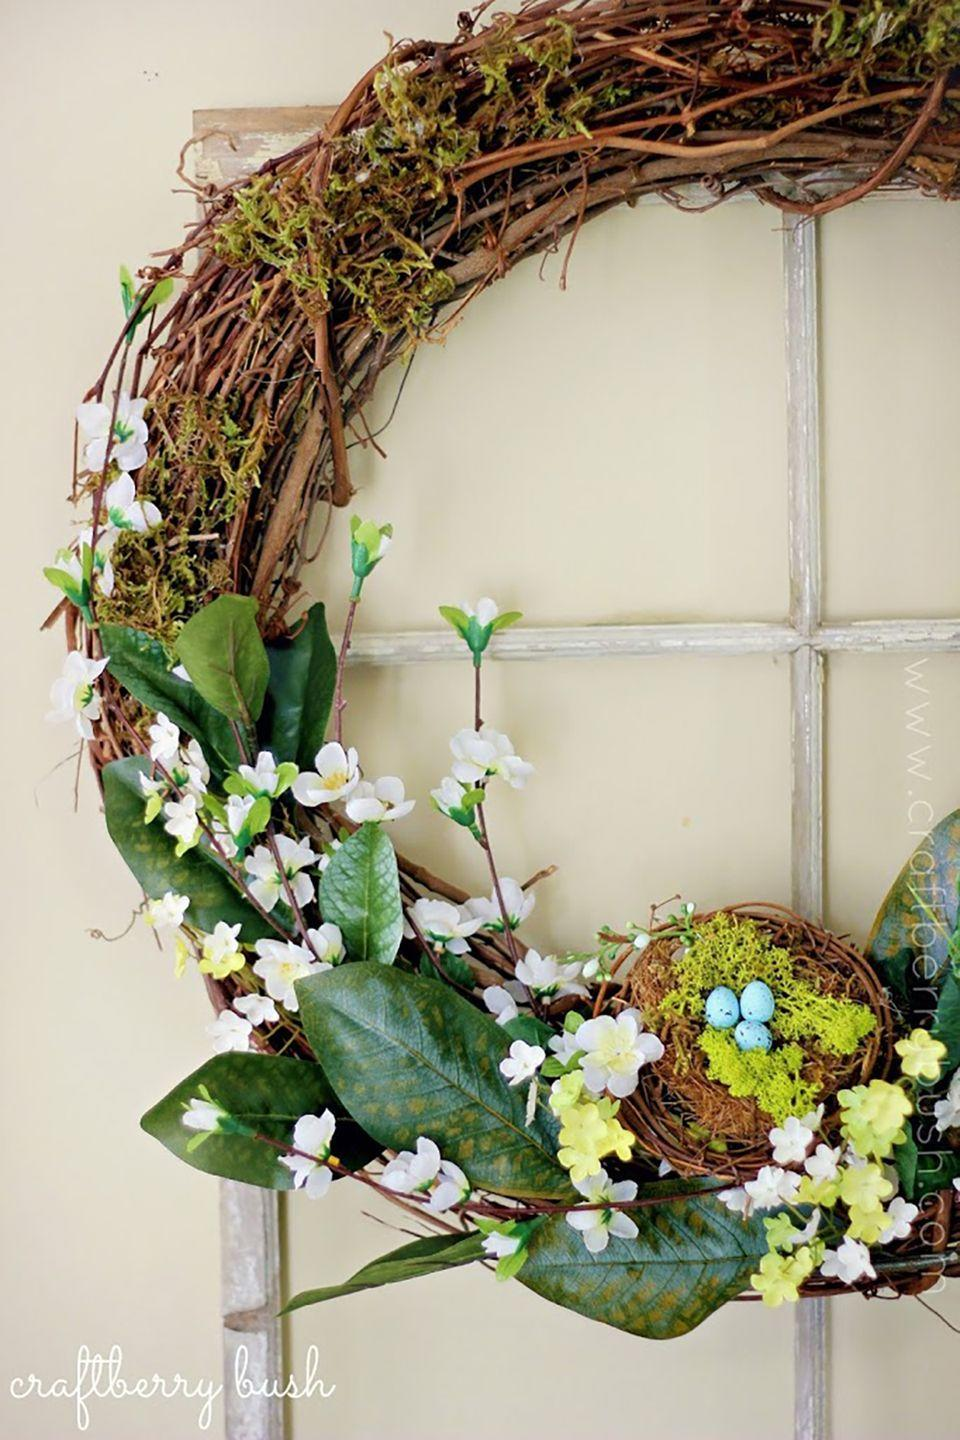 """<p>With moss, leaves, flowers, and a little bird's nest, this woodsy wreath embodies the spirit of spring.</p><p><strong>Get the tutorial at <a href=""""https://www.craftberrybush.com/2013/04/easy-spring-wreath.html"""" rel=""""nofollow noopener"""" target=""""_blank"""" data-ylk=""""slk:Craftberry Bush"""" class=""""link rapid-noclick-resp"""">Craftberry Bush</a>.</strong><br></p><p><strong><strong><a class=""""link rapid-noclick-resp"""" href=""""https://www.amazon.com/Bulk-Buy-Darice-Grapevine-Wreath/dp/B0033M0HG4?tag=syn-yahoo-20&ascsubtag=%5Bartid%7C10050.g.4088%5Bsrc%7Cyahoo-us"""" rel=""""nofollow noopener"""" target=""""_blank"""" data-ylk=""""slk:SHOP GRAPEVINE WREATHS"""">SHOP GRAPEVINE WREATHS</a></strong><br></strong></p>"""